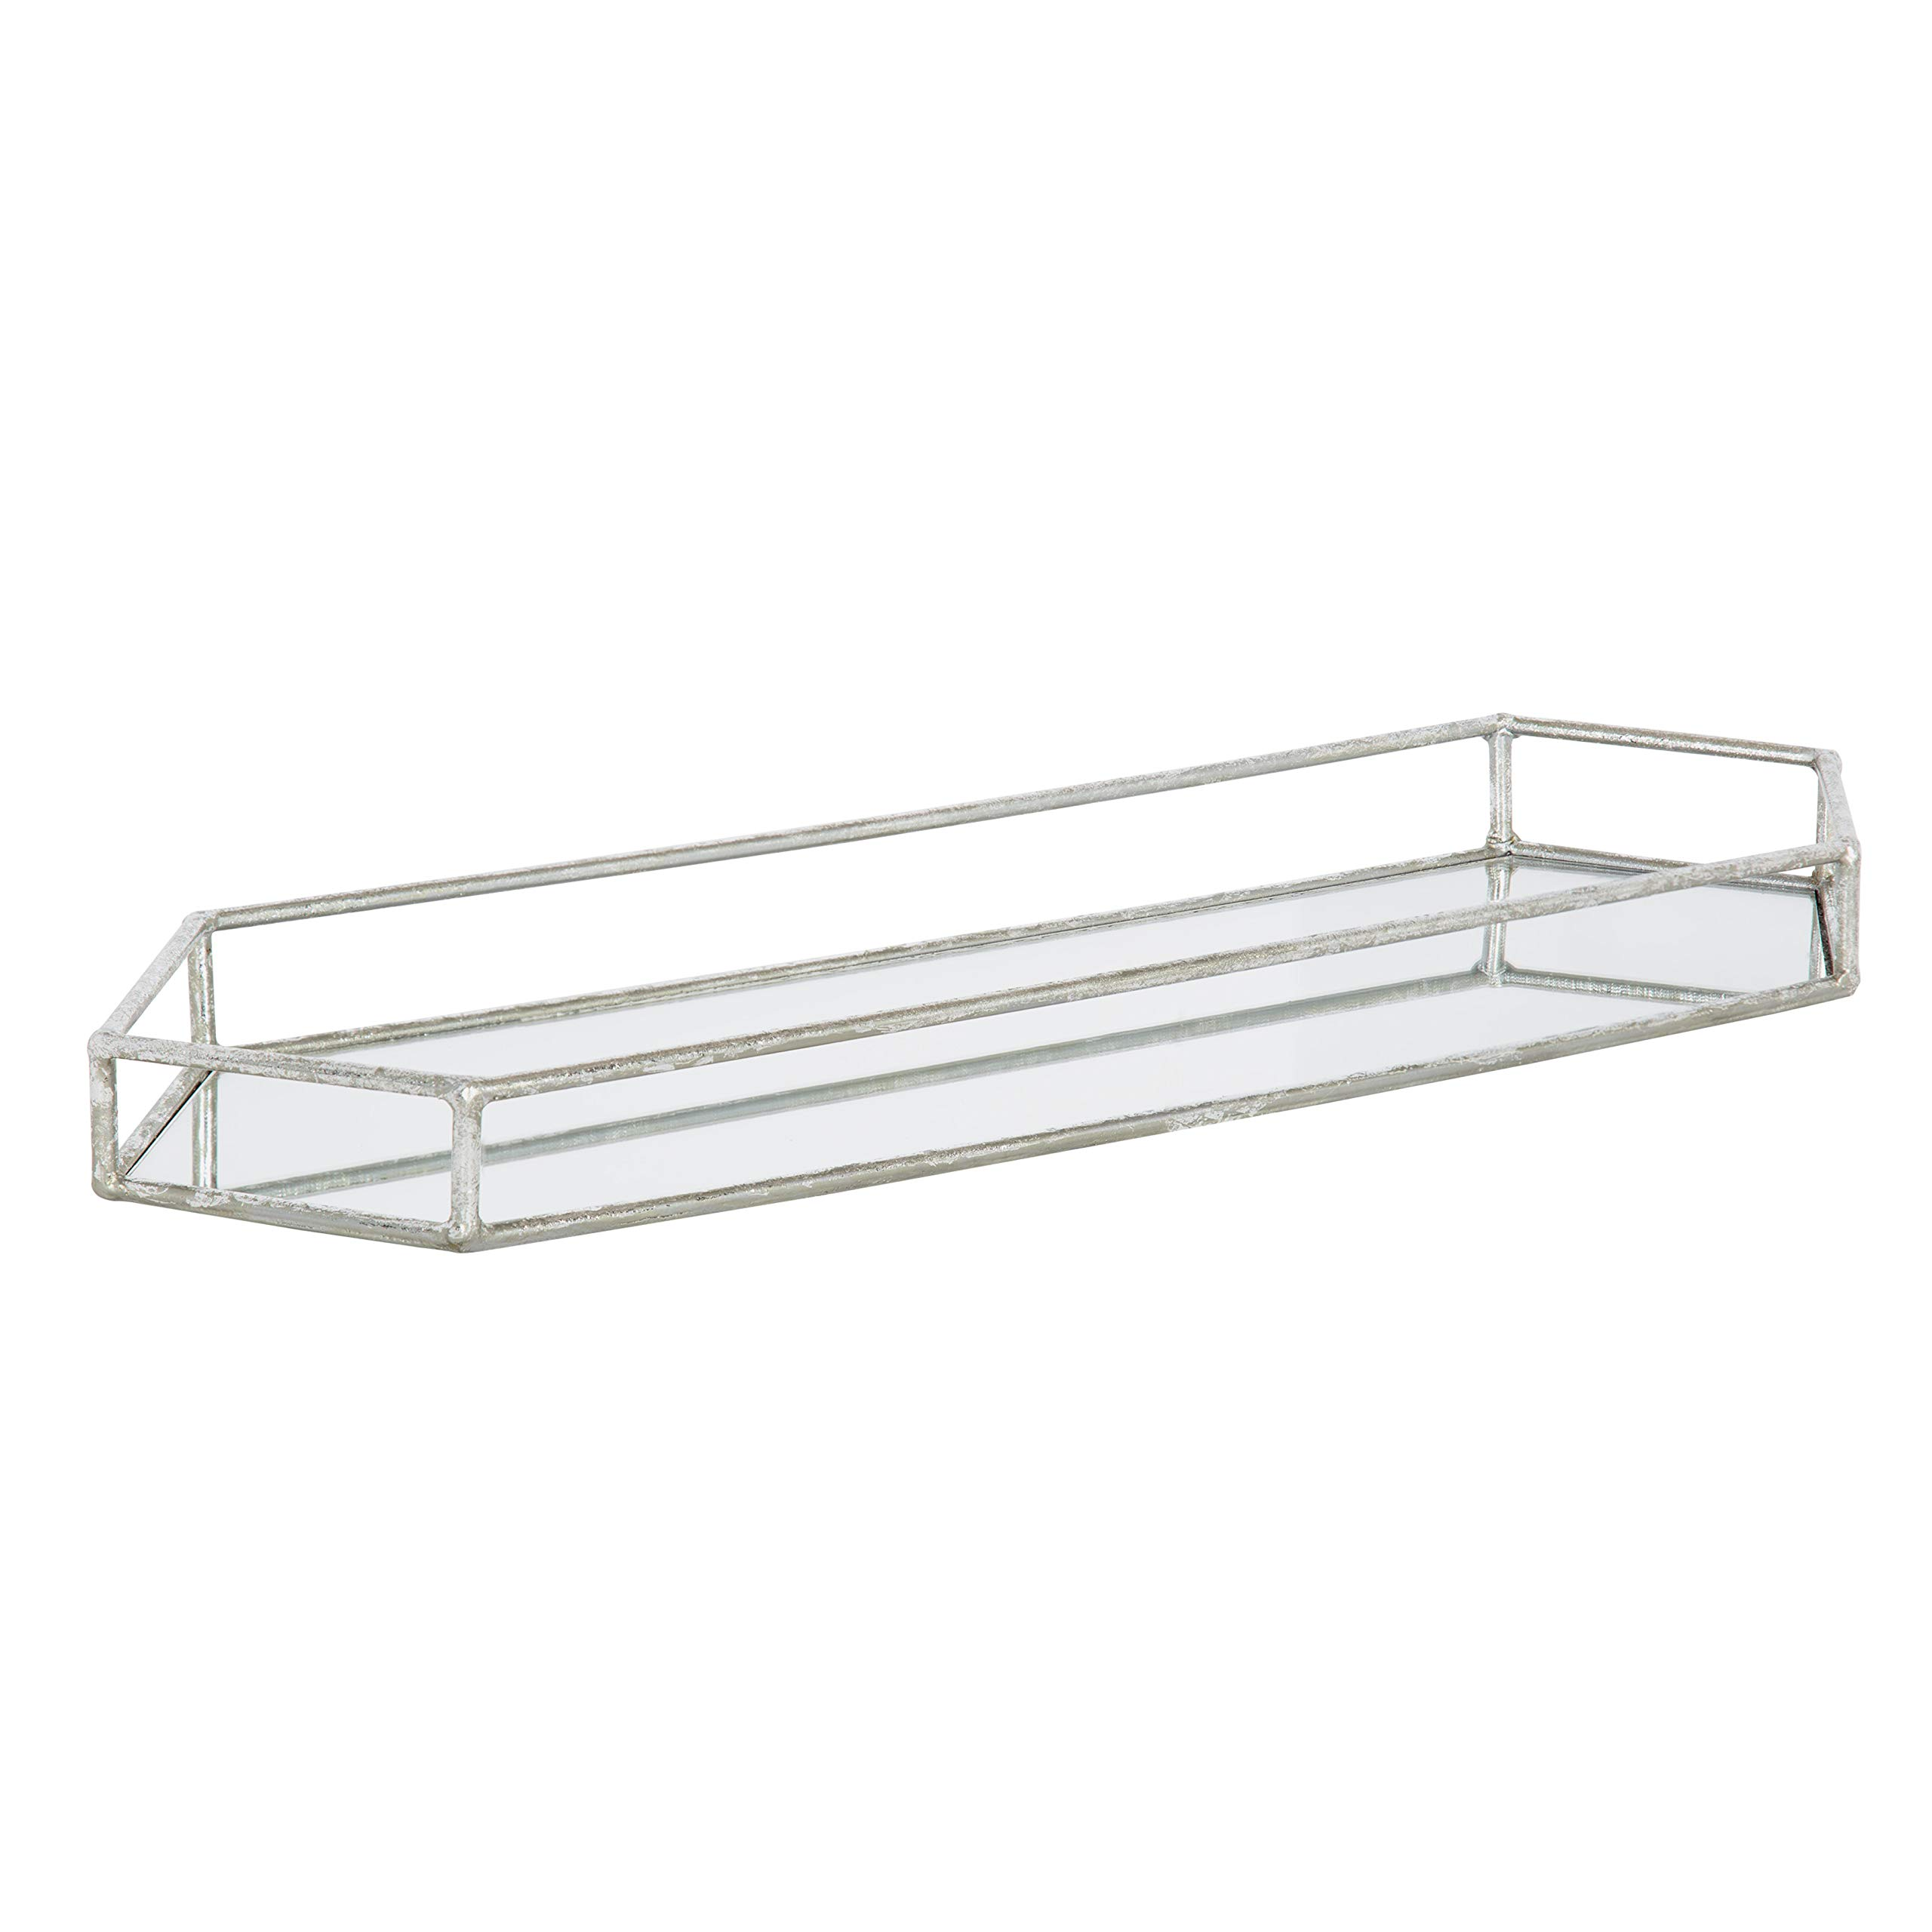 Kate and Laurel Felicia Trough Mirrored Tray, 26x8, Silver by Kate and Laurel